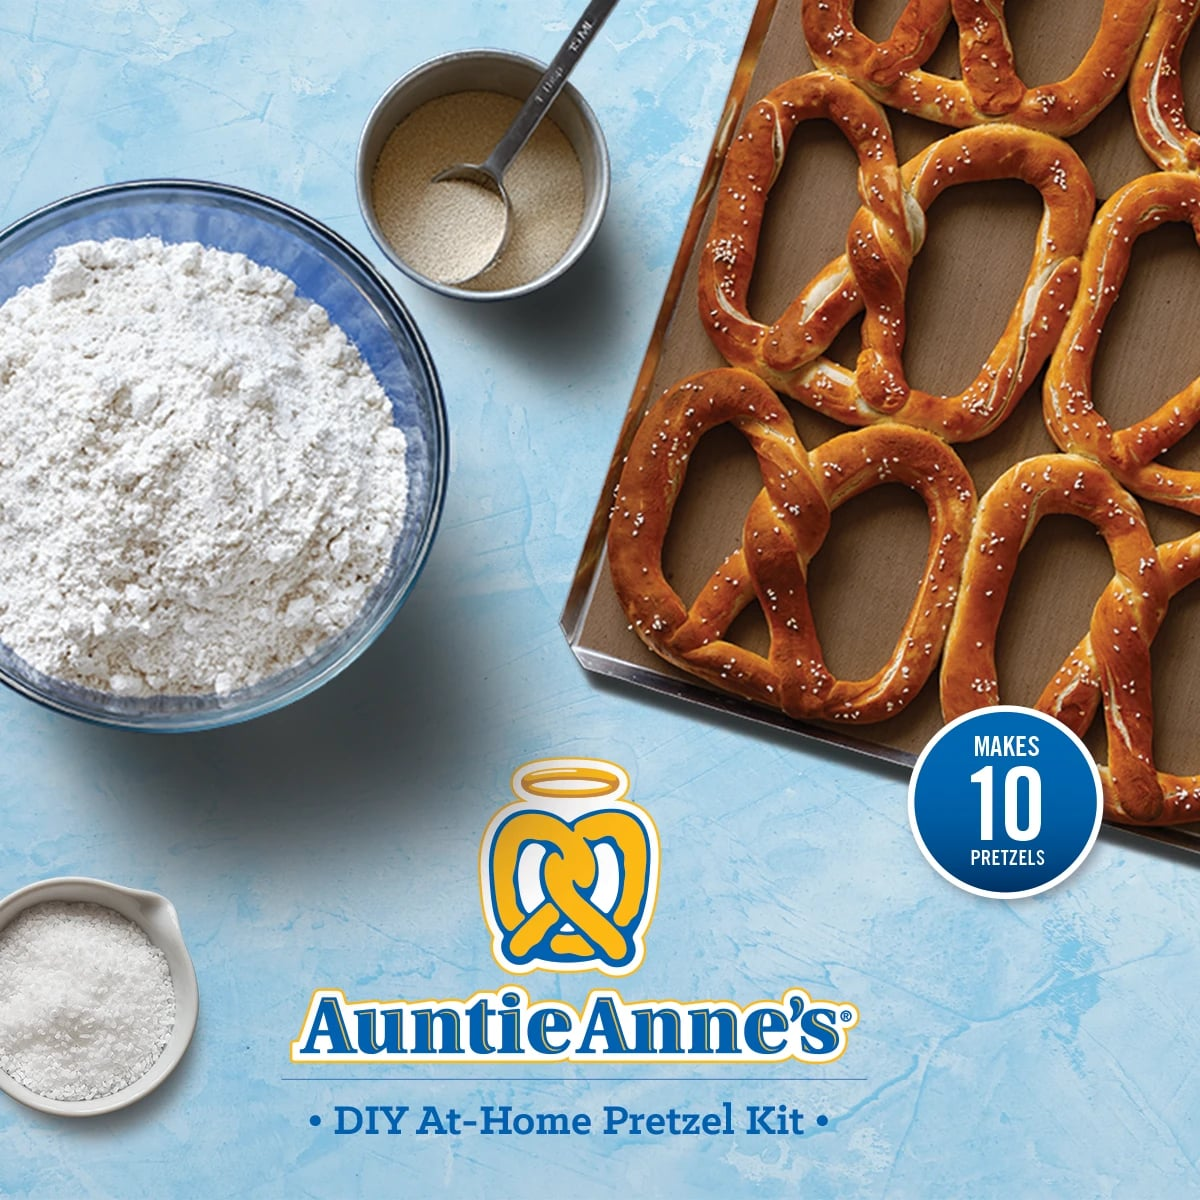 Auntie Anne's Is Selling DIY At-Home Pretzel Kits, and We Can Already Smell the Cinnamon Sugar